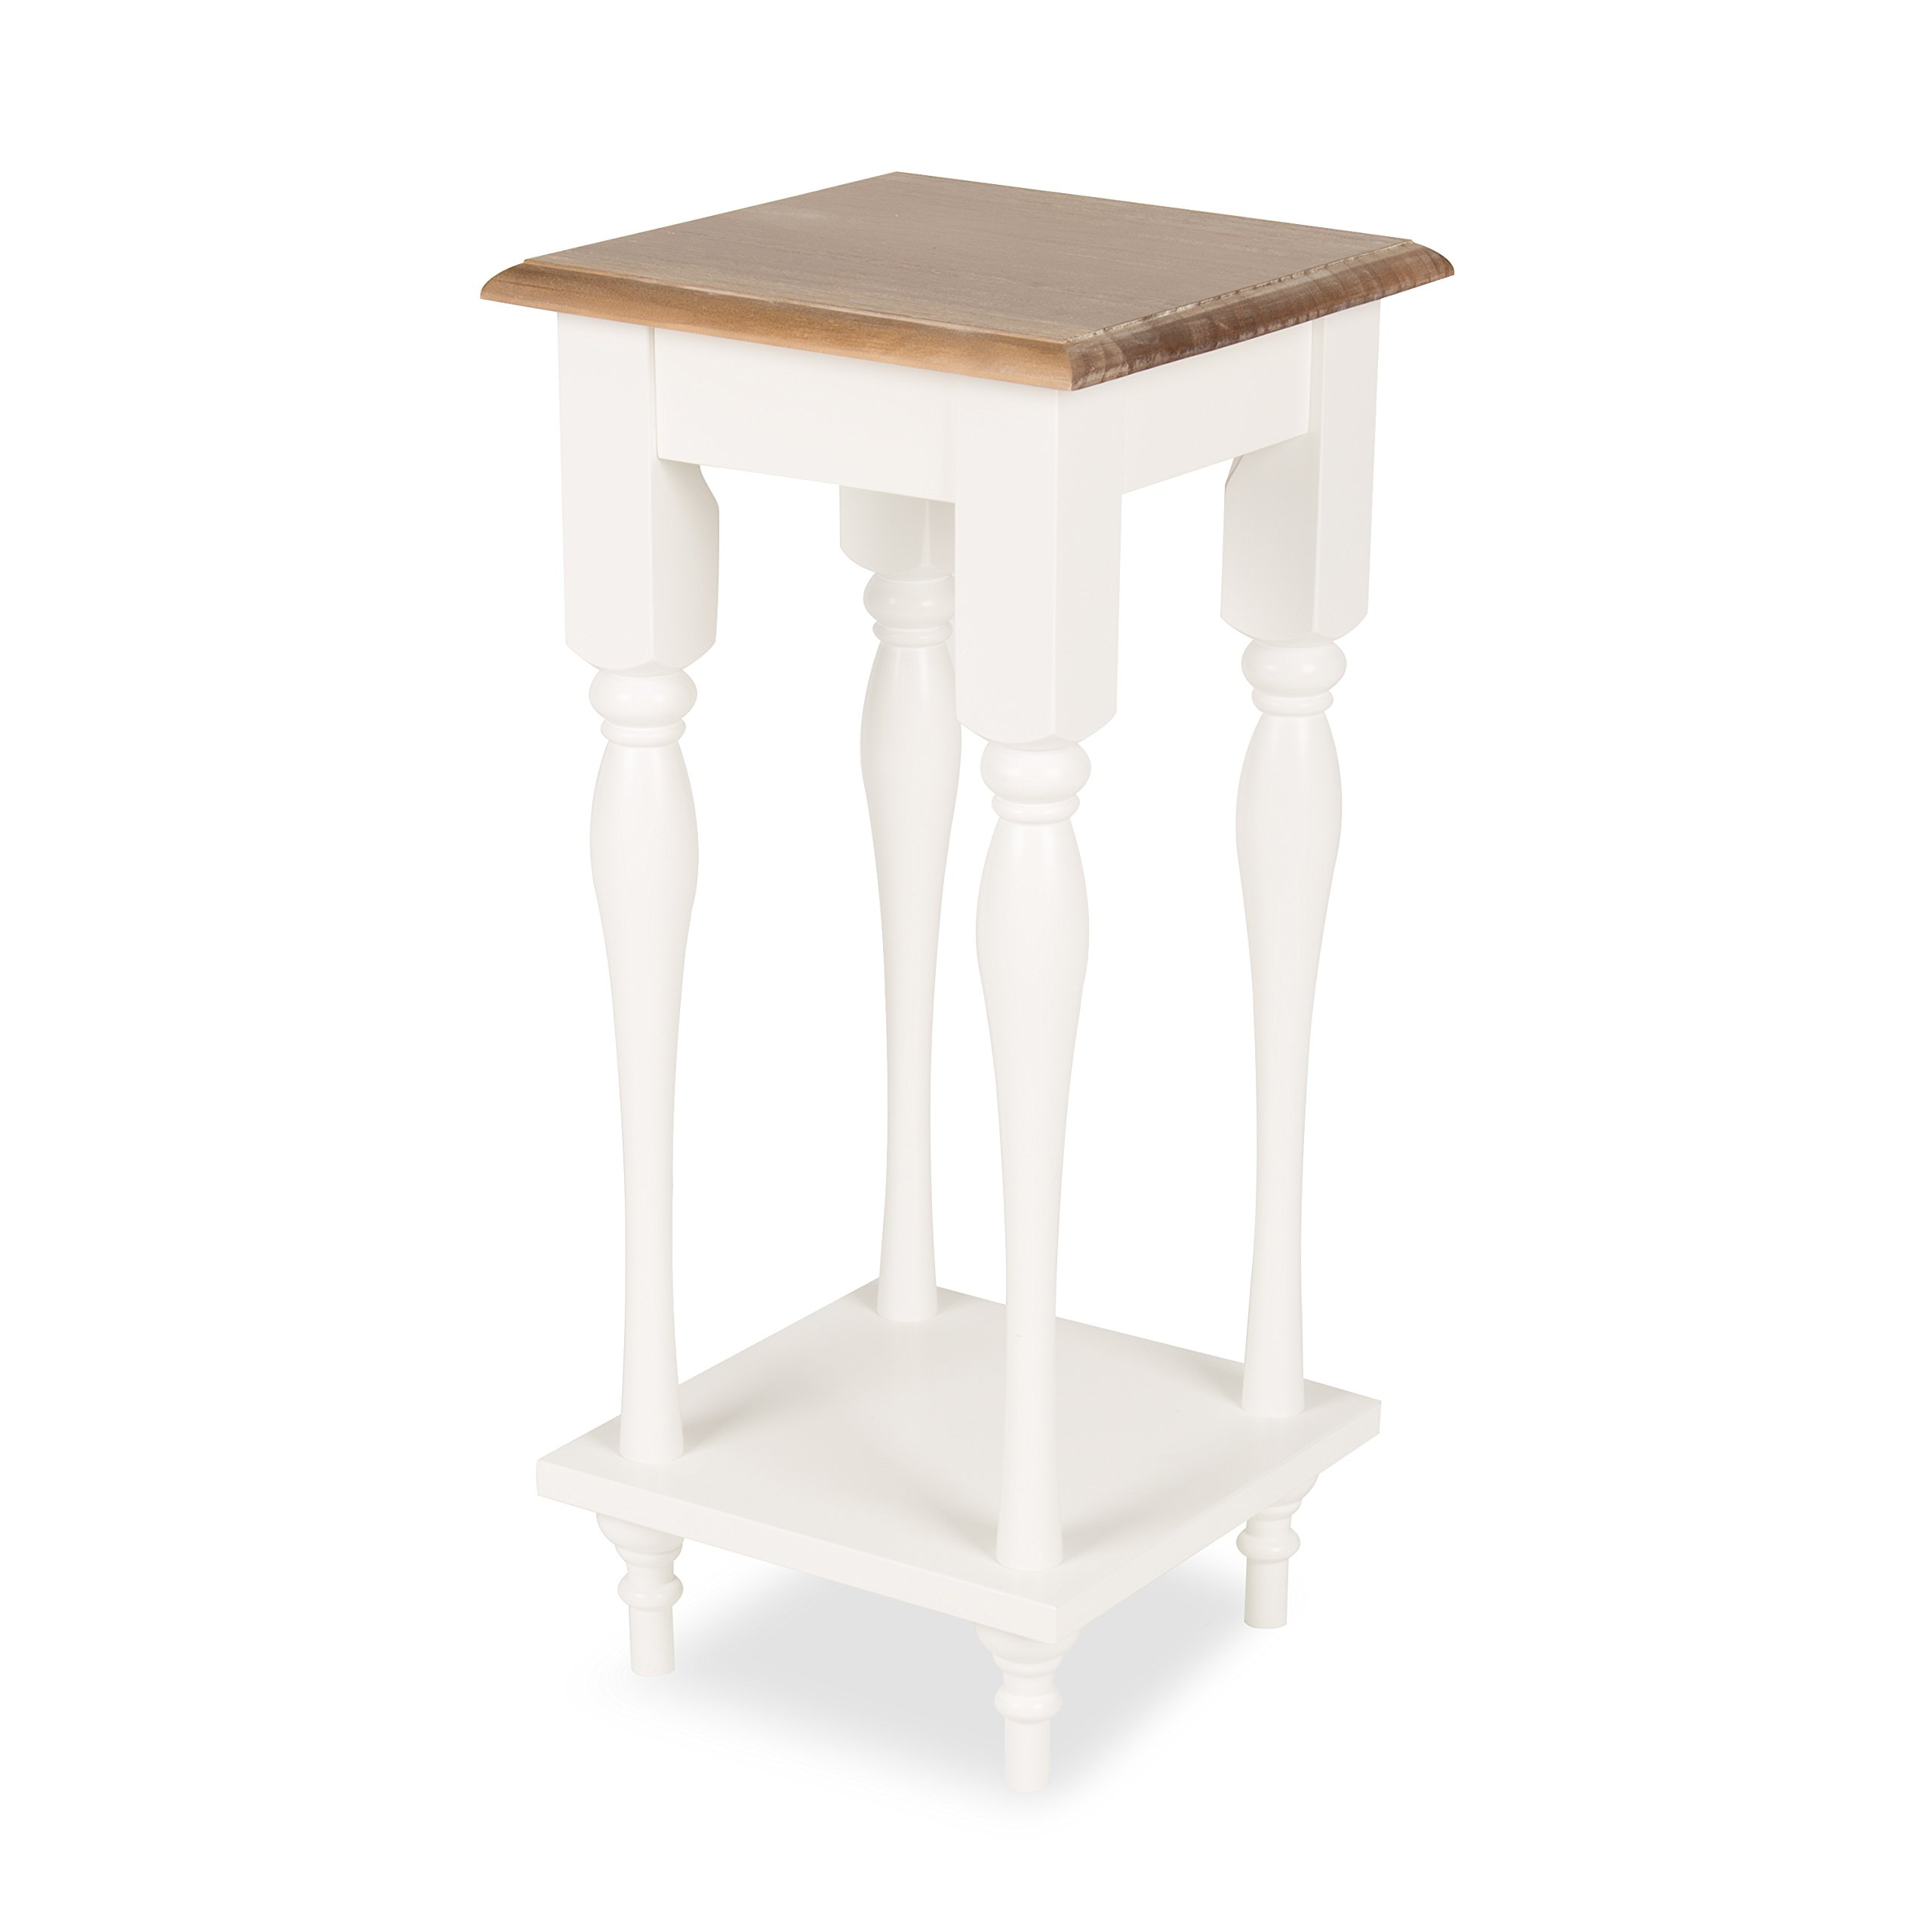 Kate and Laurel Sophia Rustic Wood Top Plant Stand End Table with Shelf, White